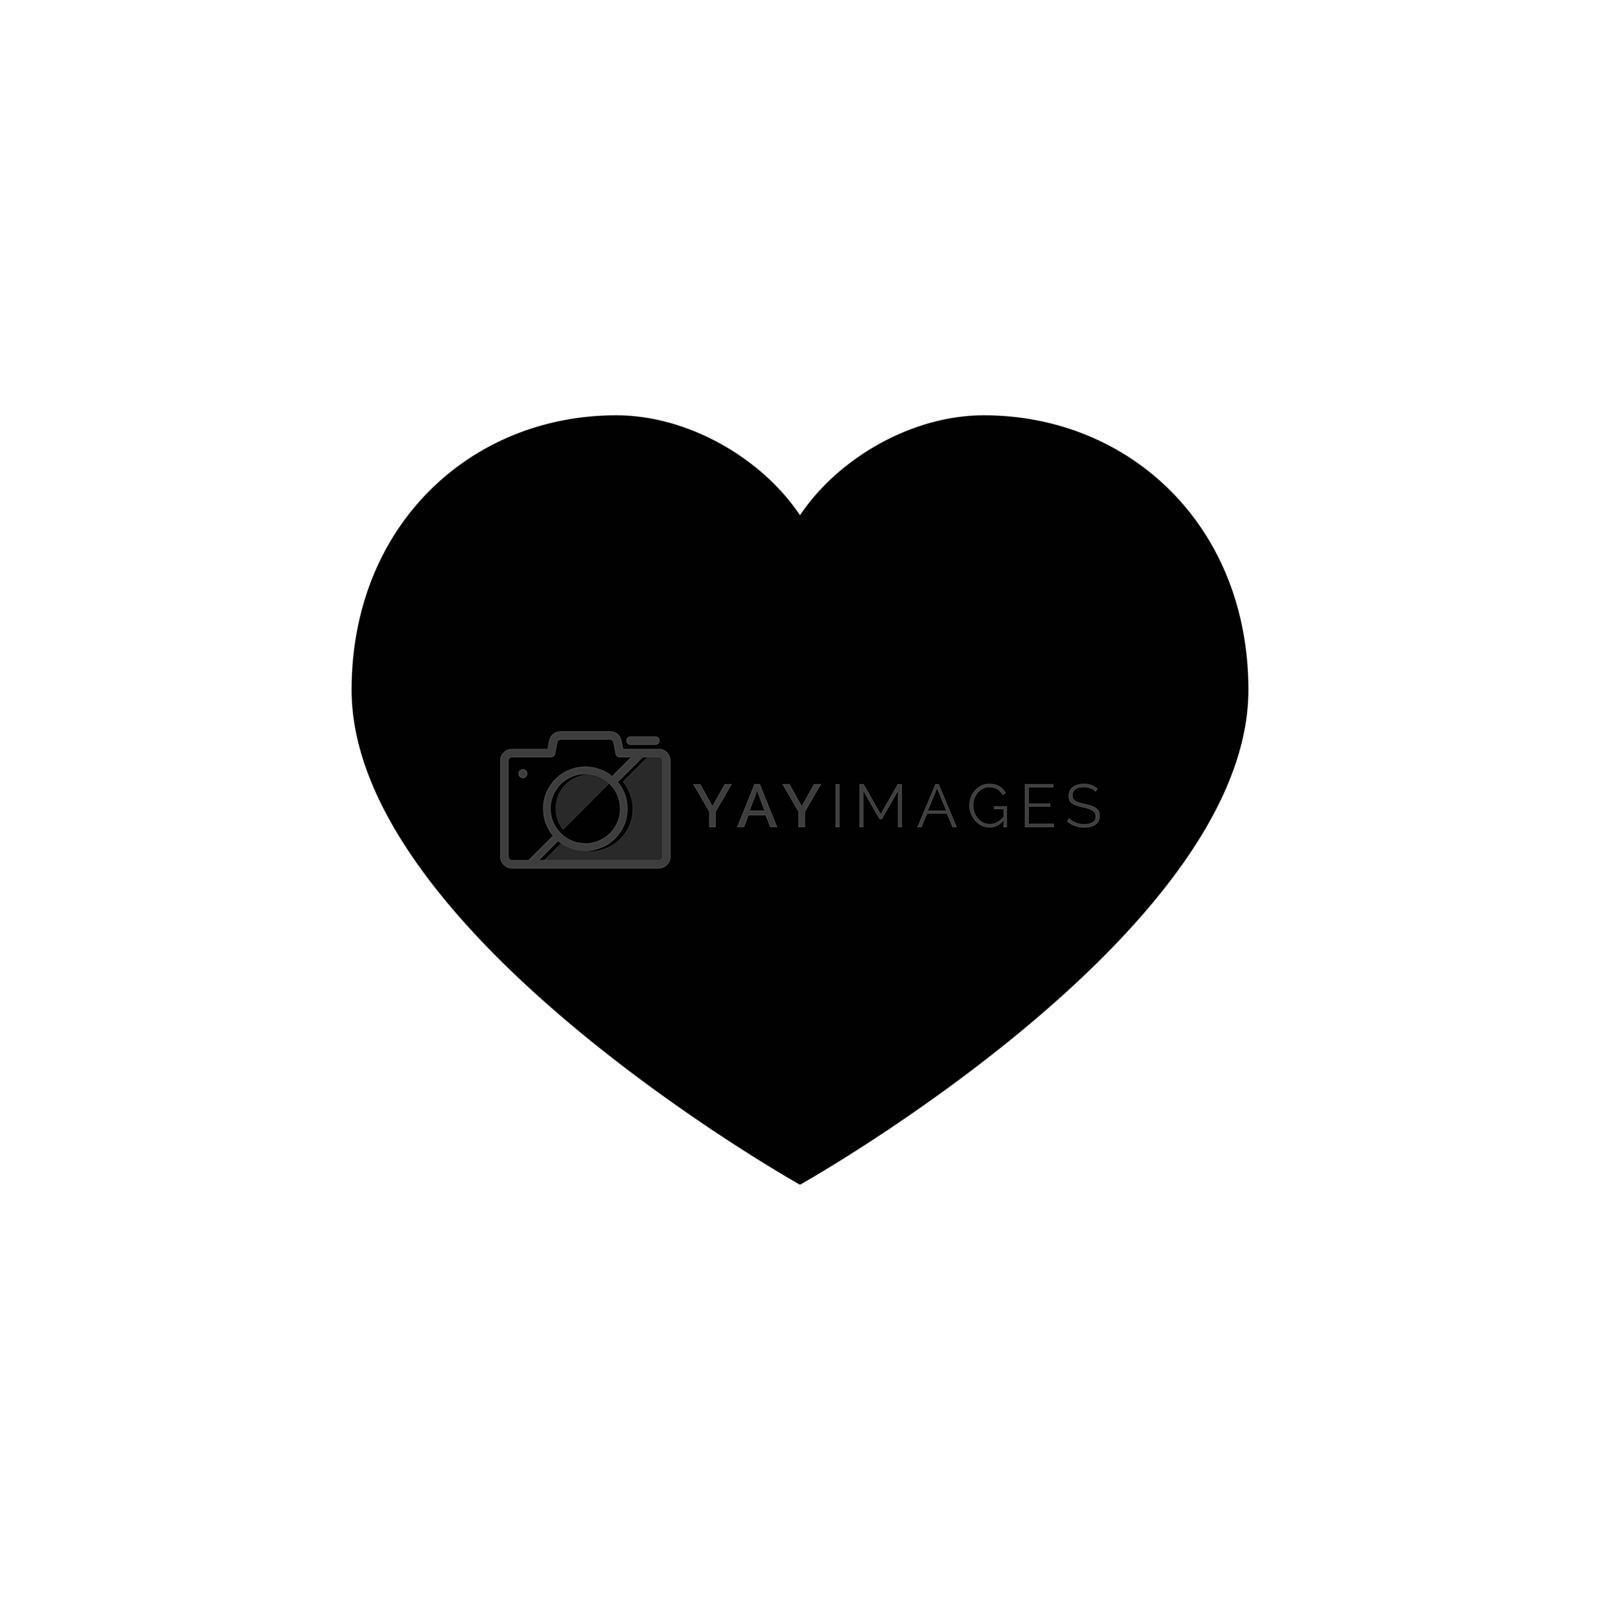 Heart vector icon. Love symbol. Valentine s Day sign. Love icon isolated on white background. Black heart emblem in flat style for graphic and web design, logo.